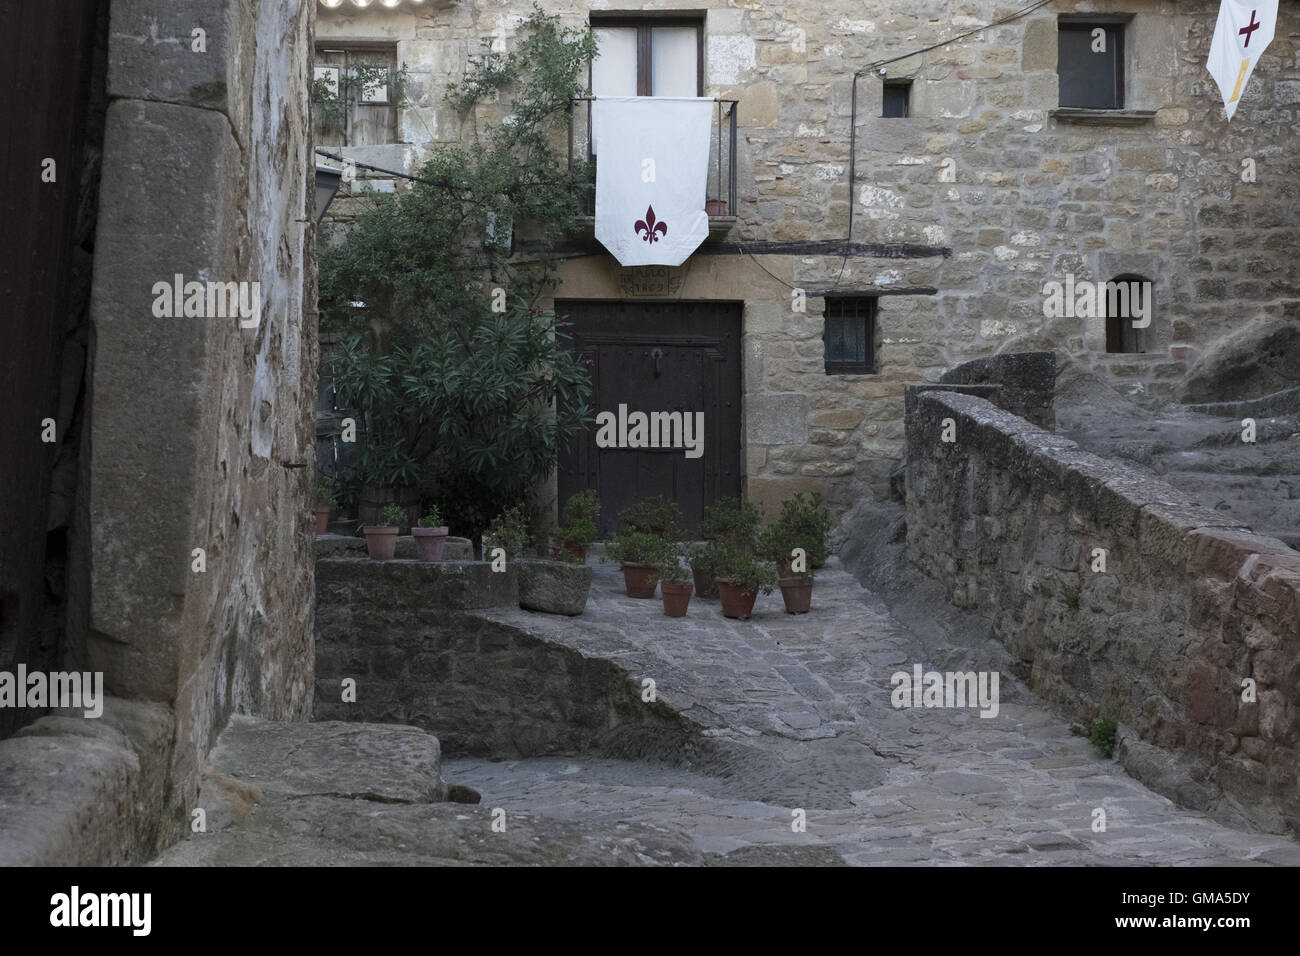 Old Jewish quarter in medieval times. - Stock Image